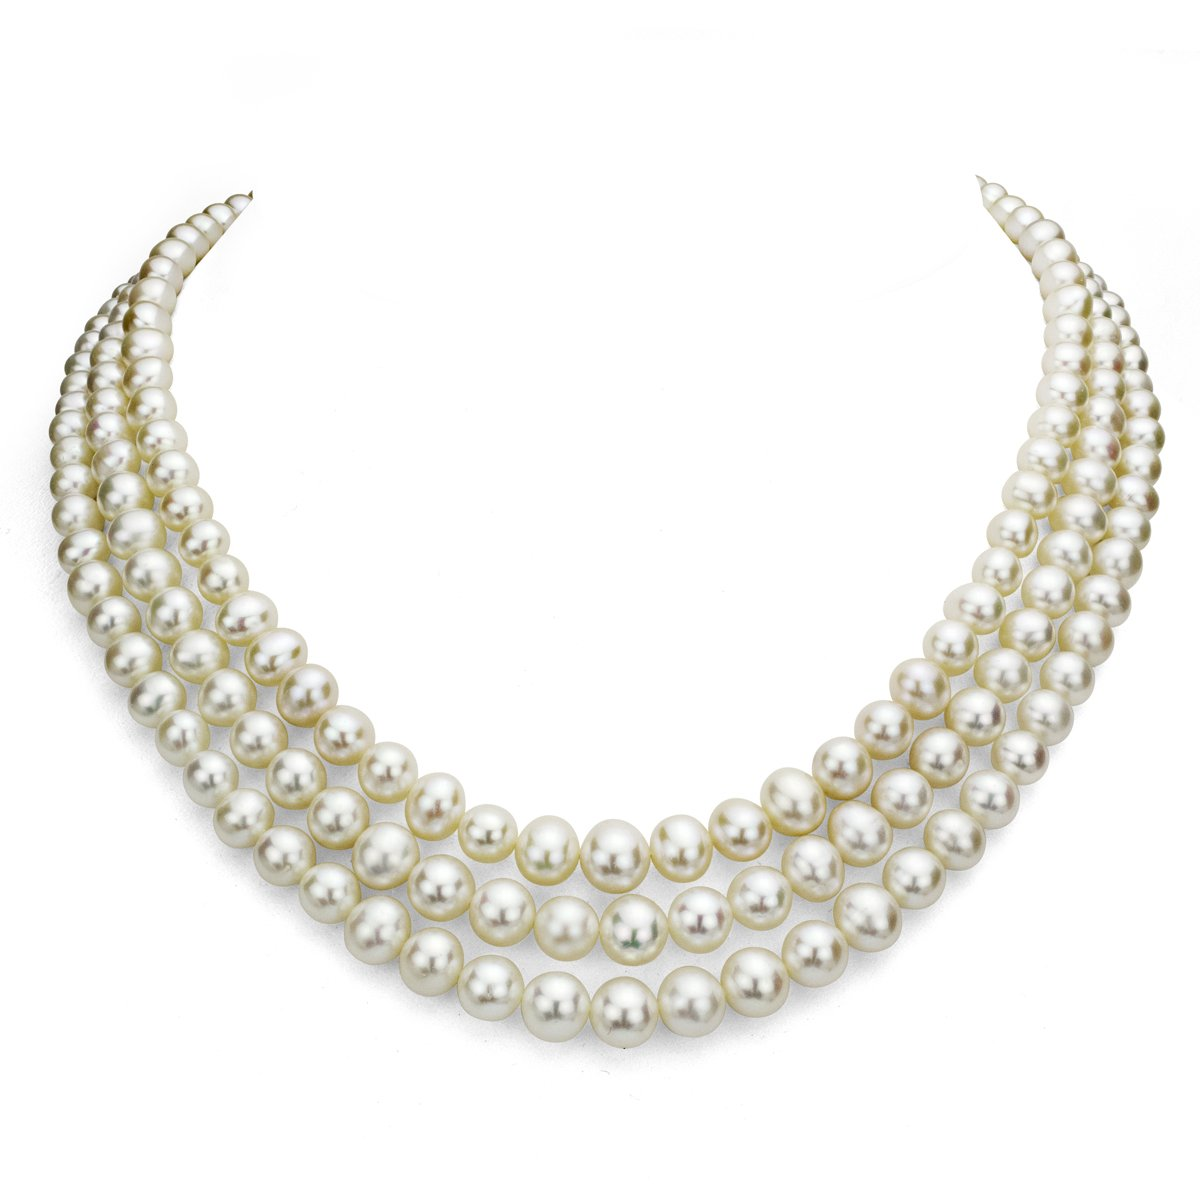 Sterling Silver Graduated 4-8.5mm White Freshwater Cultured Pearl 3-rows Necklace, 18''